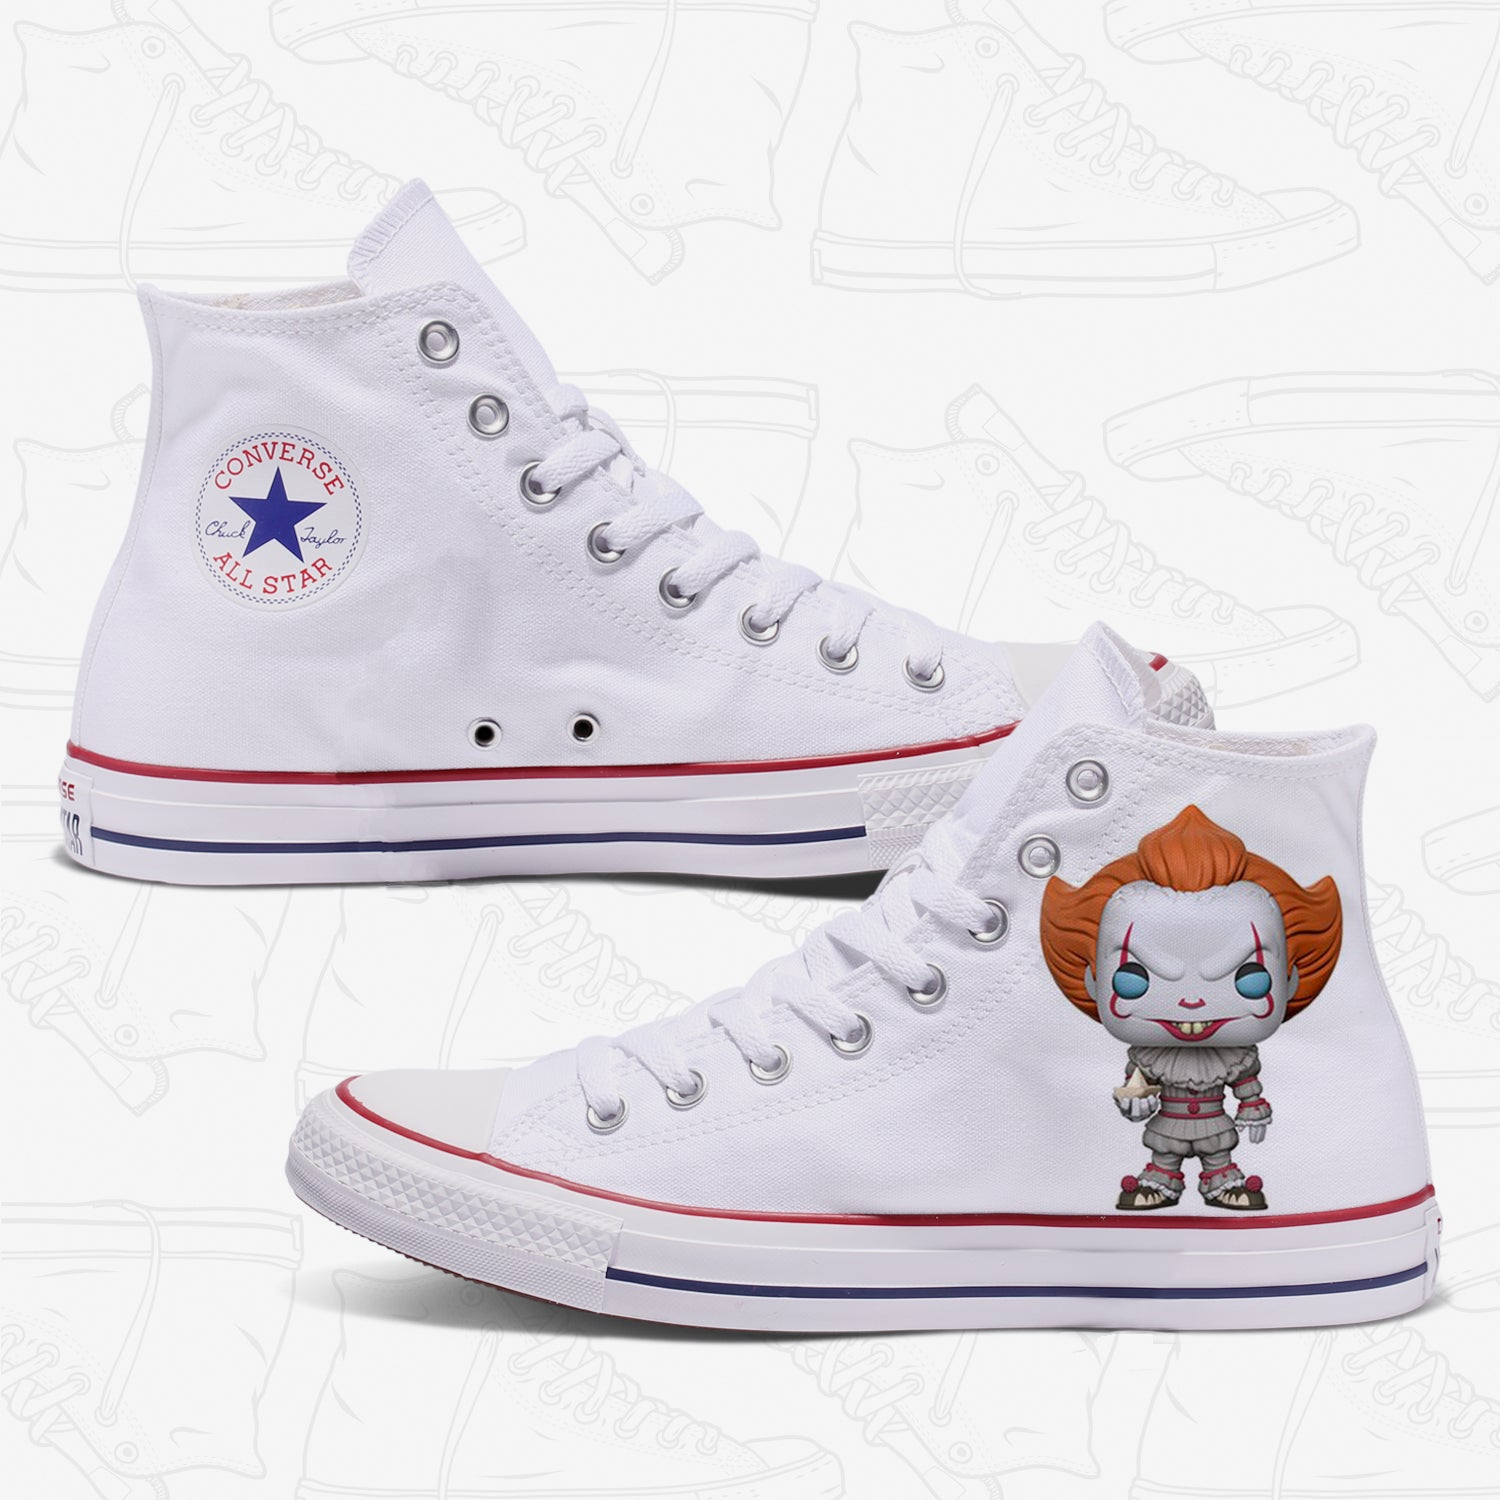 2converse pennywise